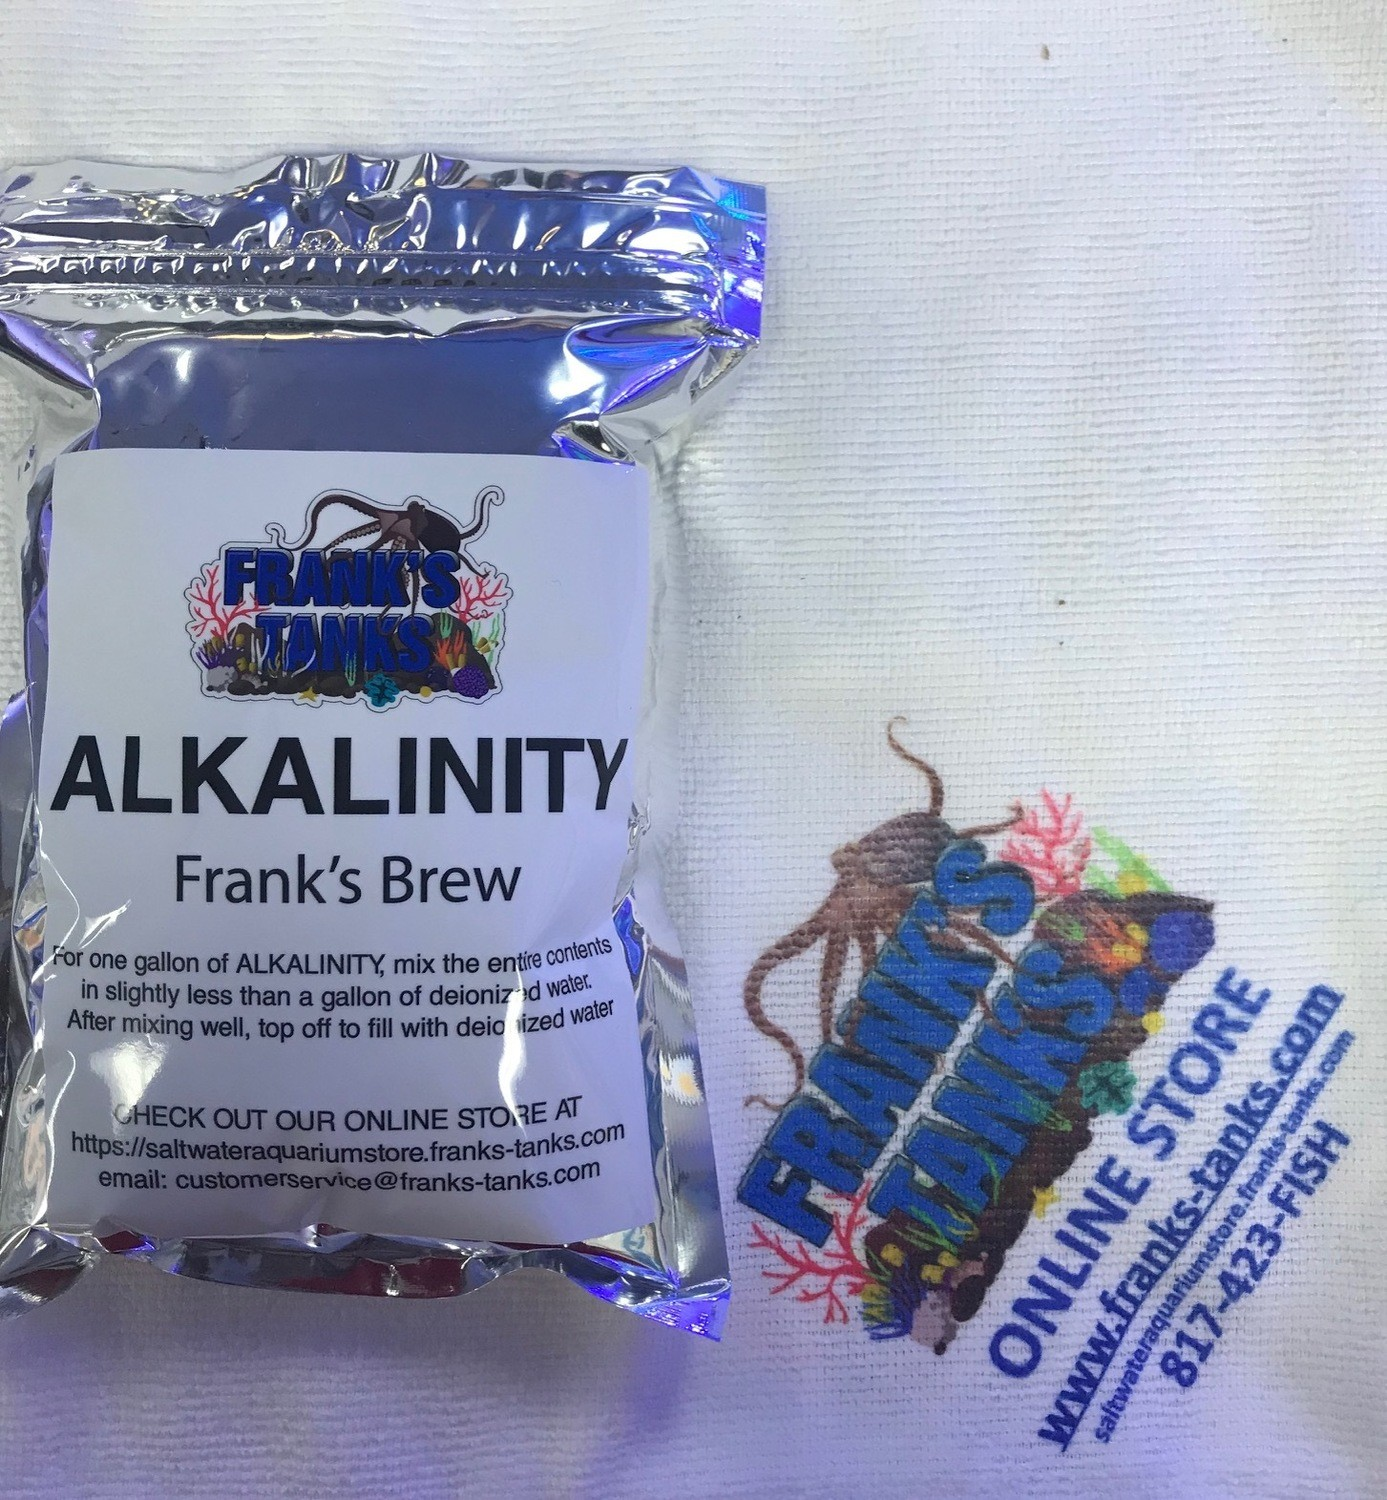 Frank's Tanks 1 gallon Alkalinity mix- Frank's Brew ( Sodium Carbonate )